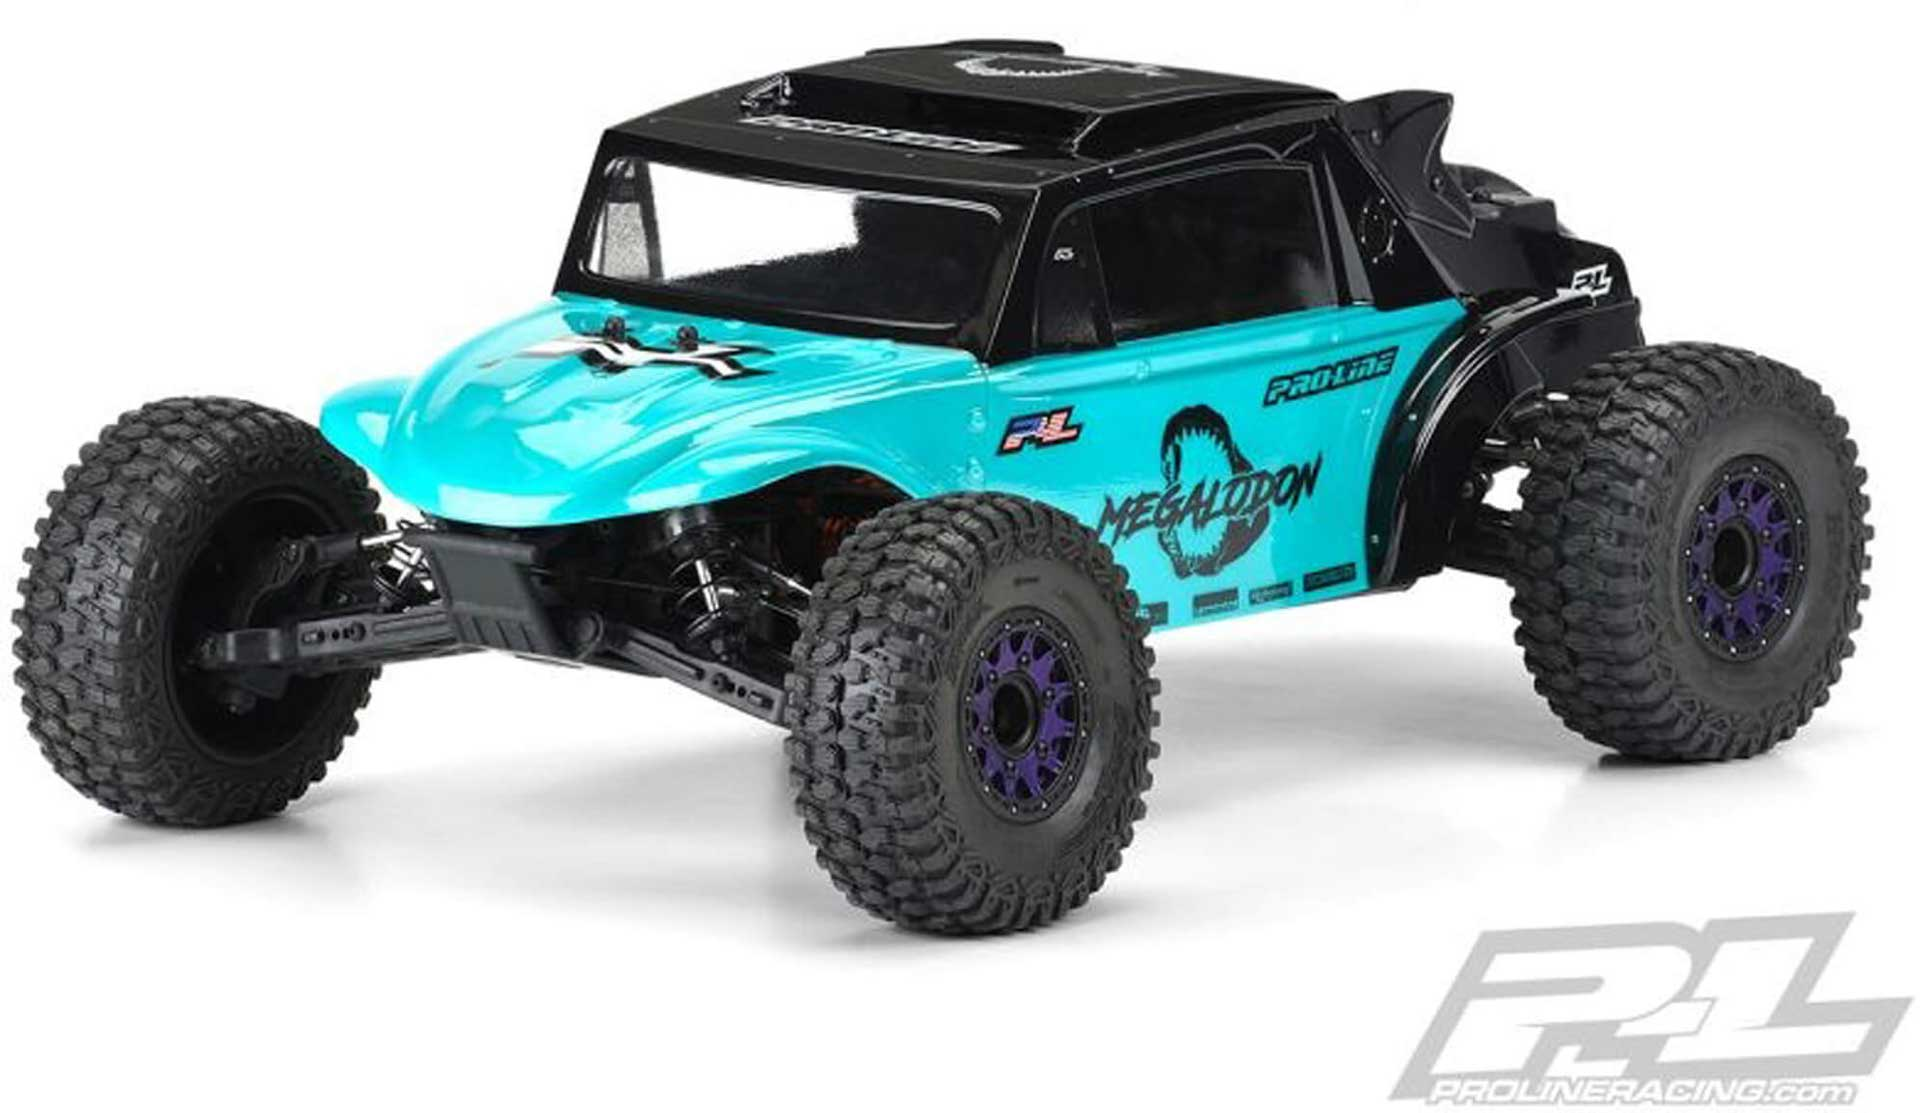 PROLINE Megalodon Desert Buggy body for Slash 2WD & 4X4 unpainted